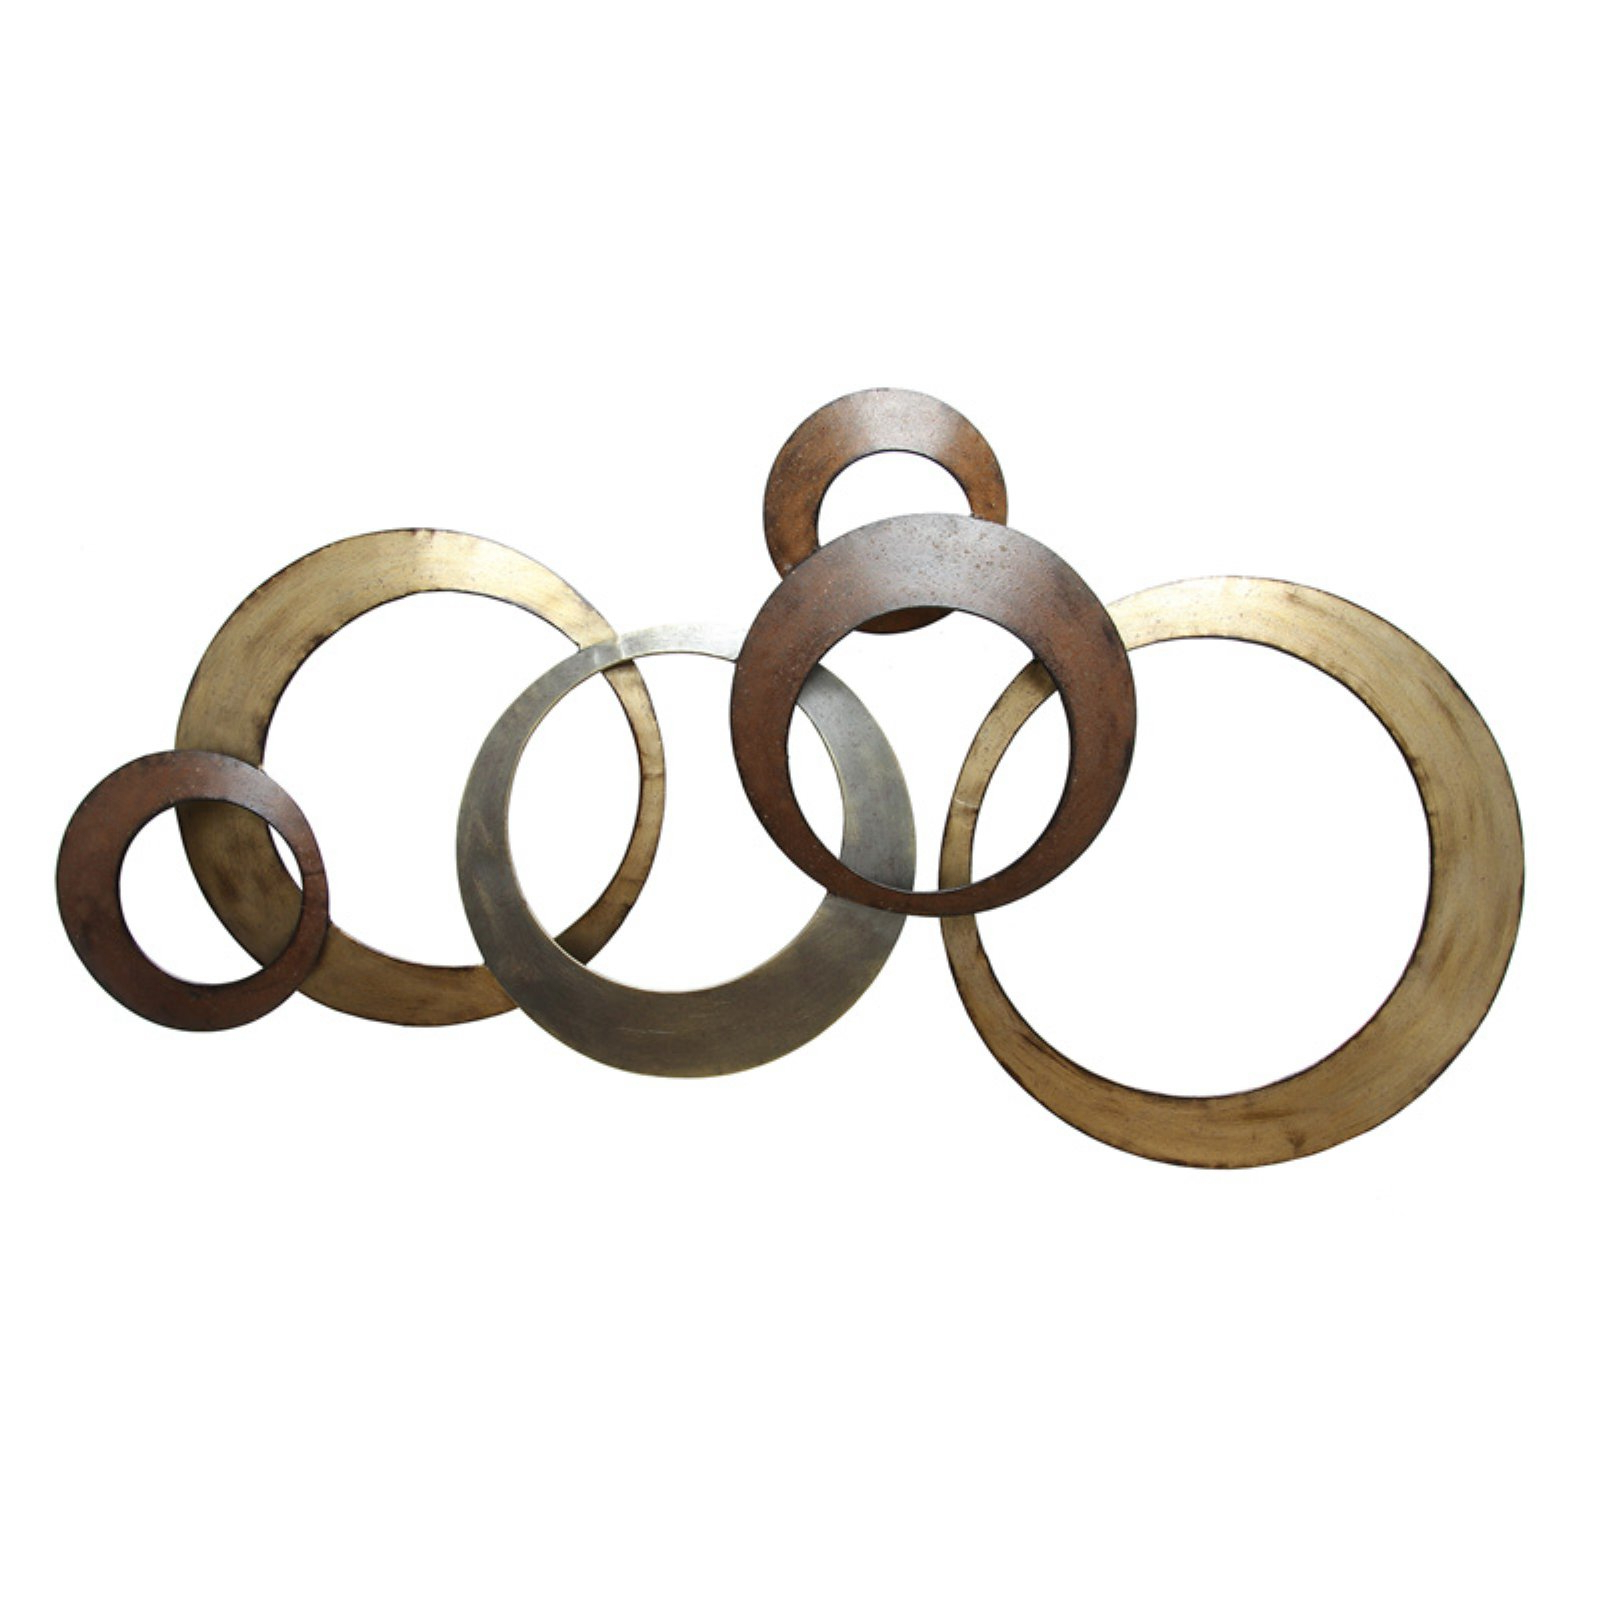 Stratton Home Decor Metallic Rings Wall Decor – Walmart Inside Preferred Rings Wall Décor By Stratton Home Decor (View 4 of 20)